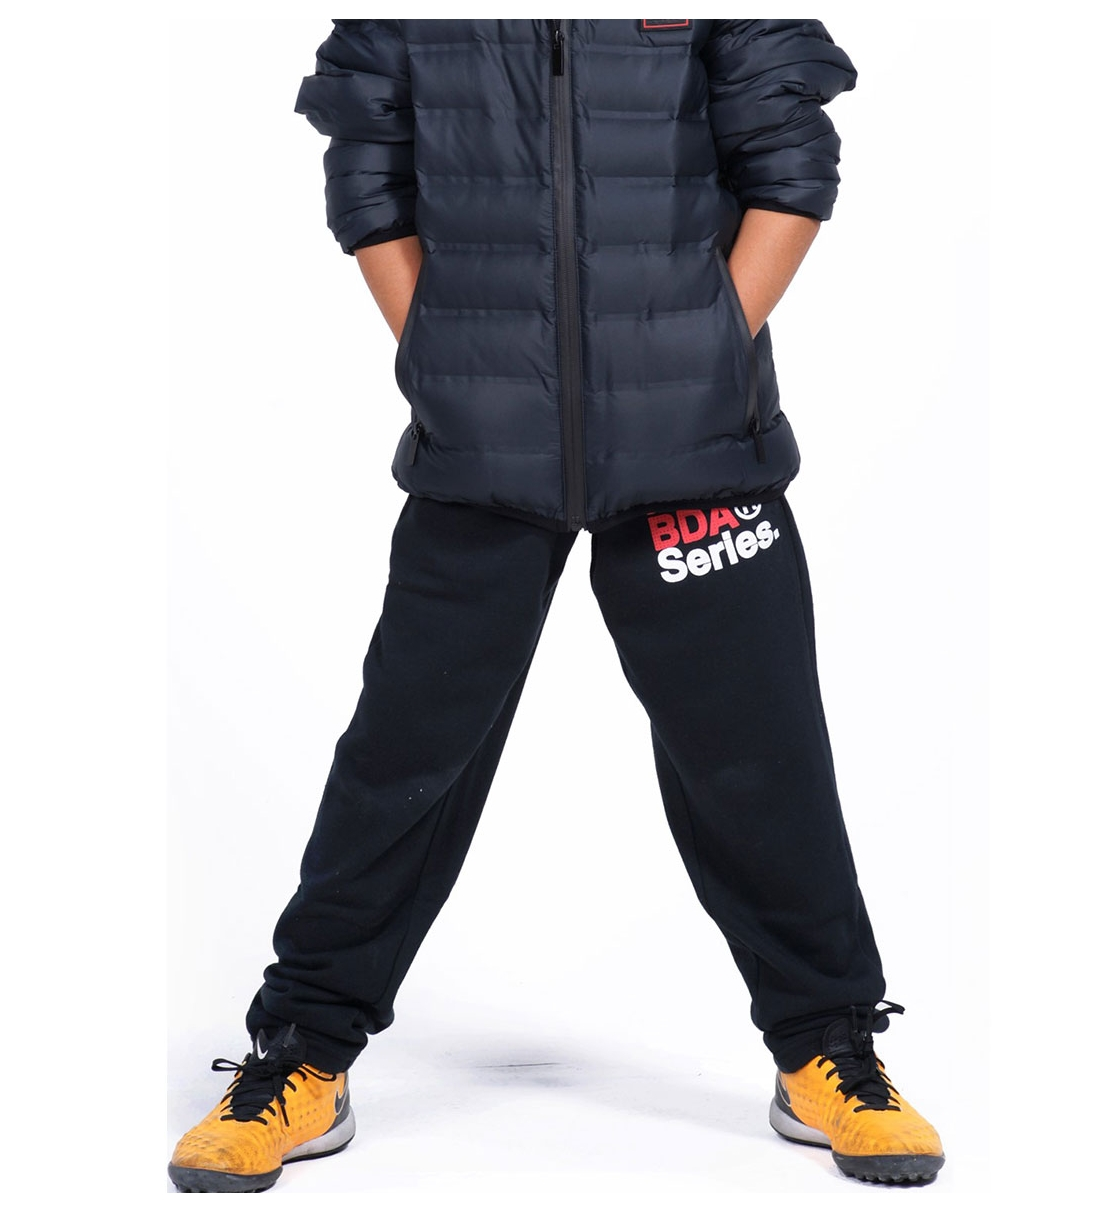 Body Action Fw19 Boys Basic Sweat Pants